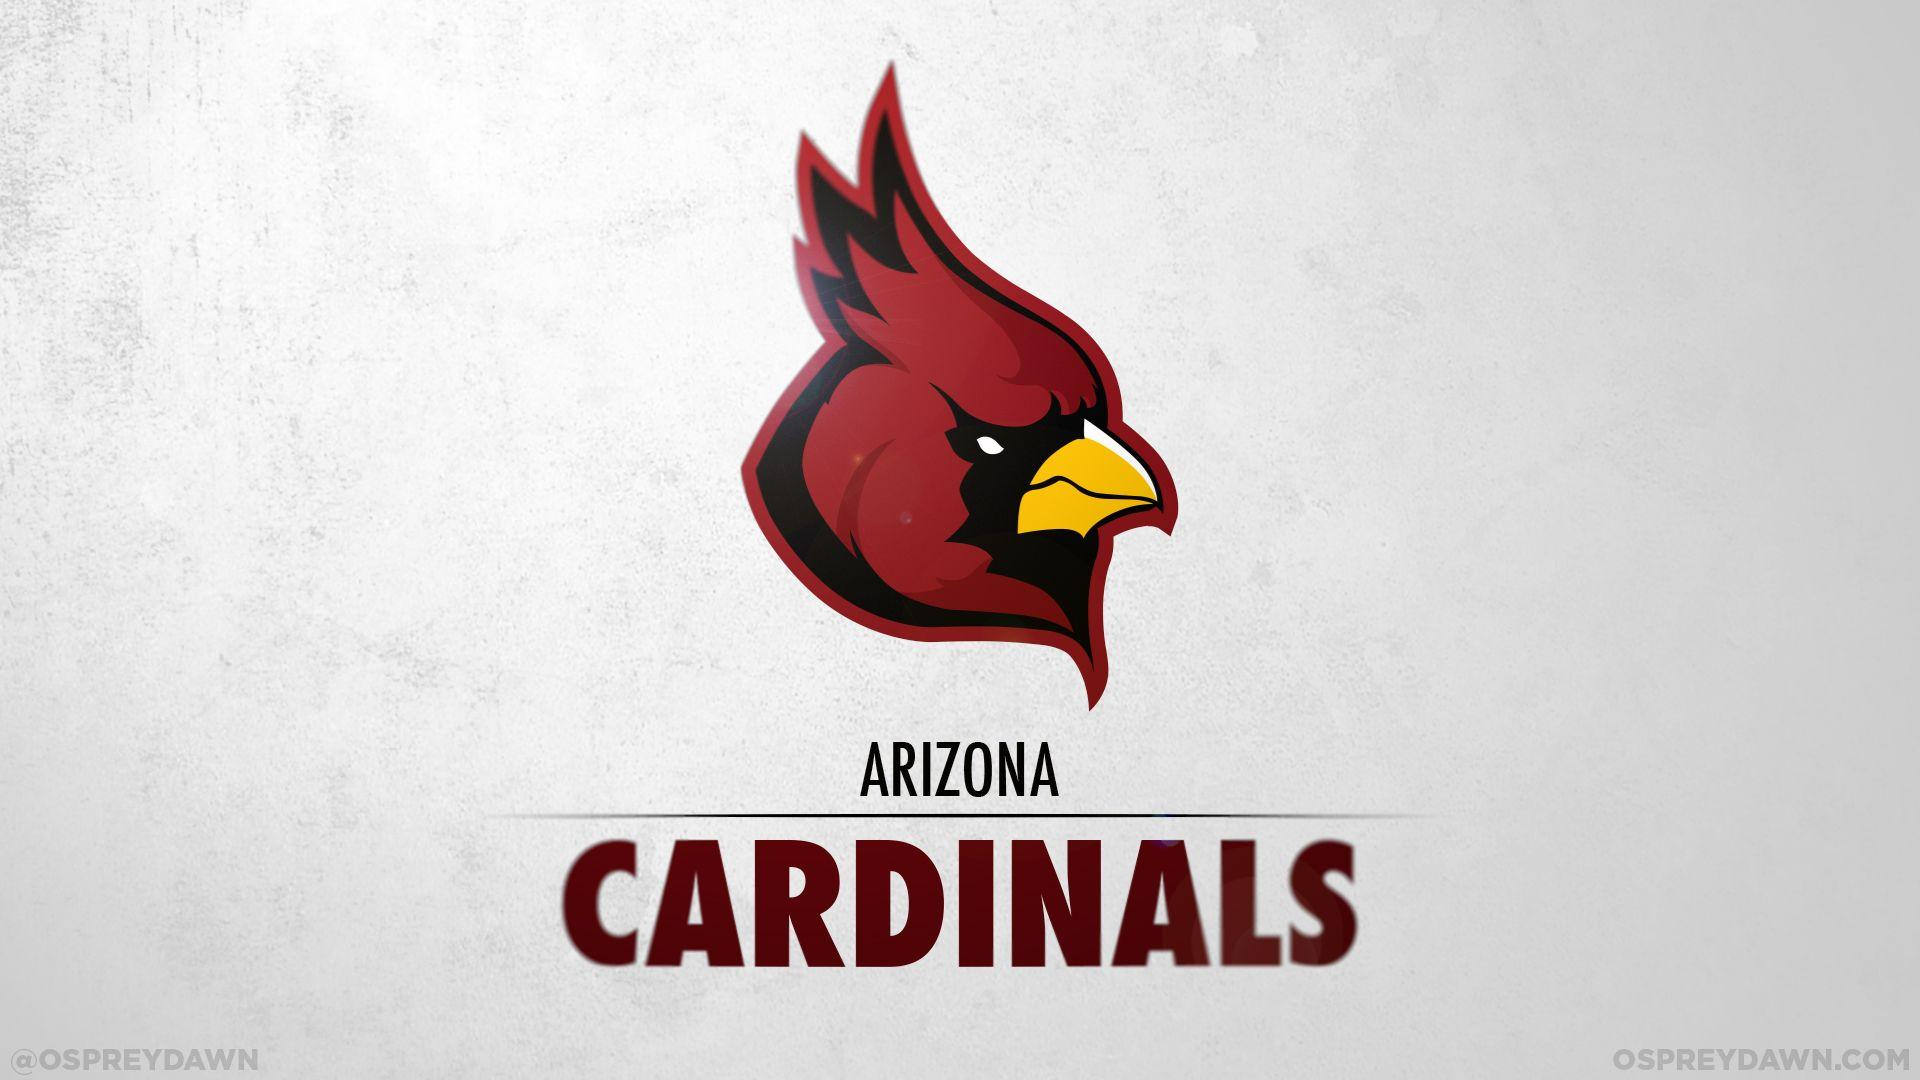 arizona cardinals wallpaper – wallpapermonkey.com